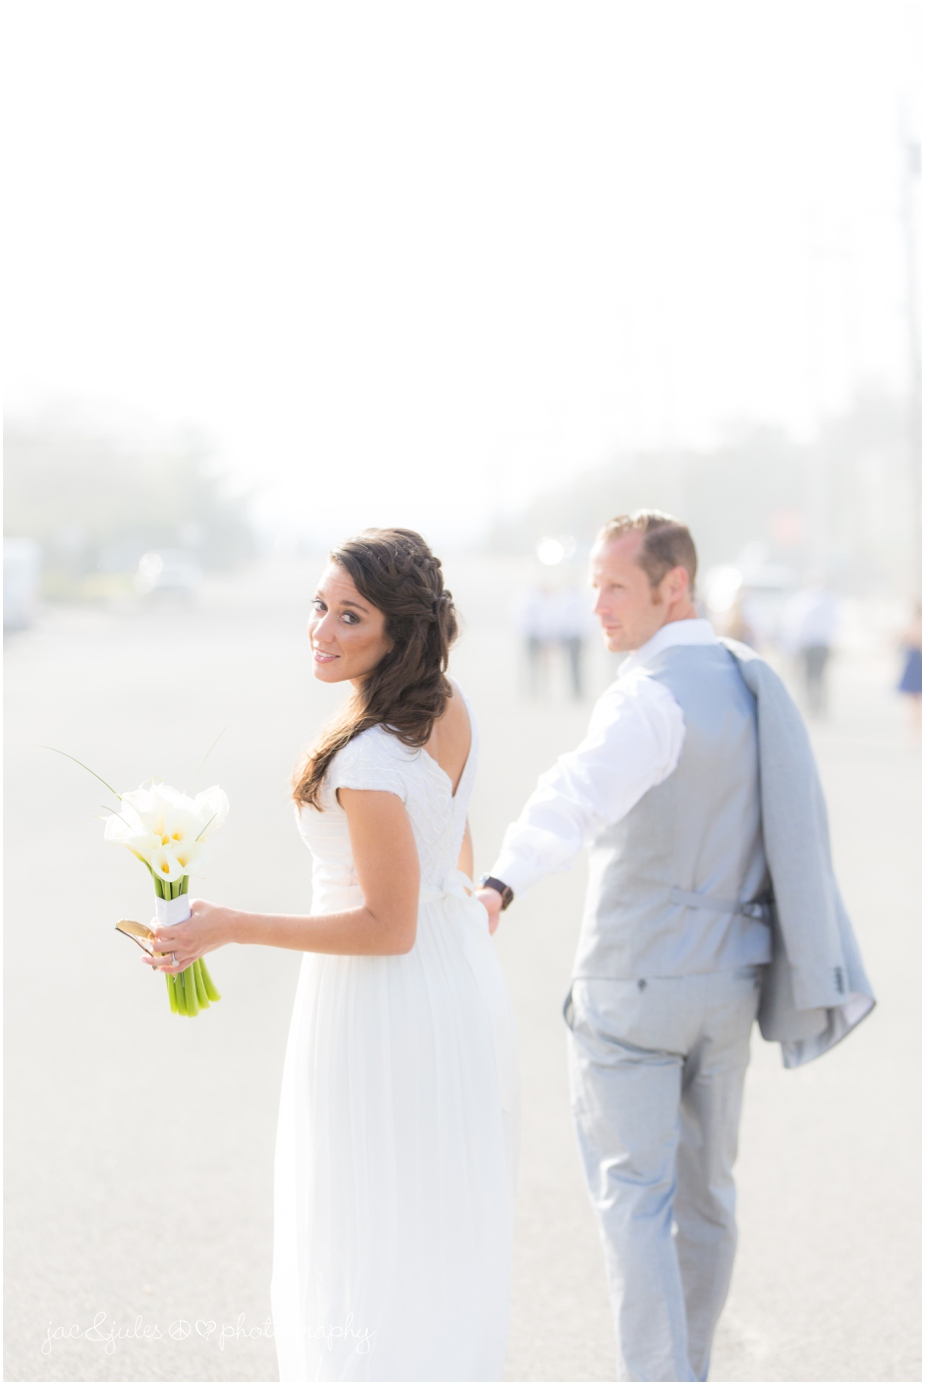 jacnjules photograph the bride and groom on wedding day on the beach in LBI